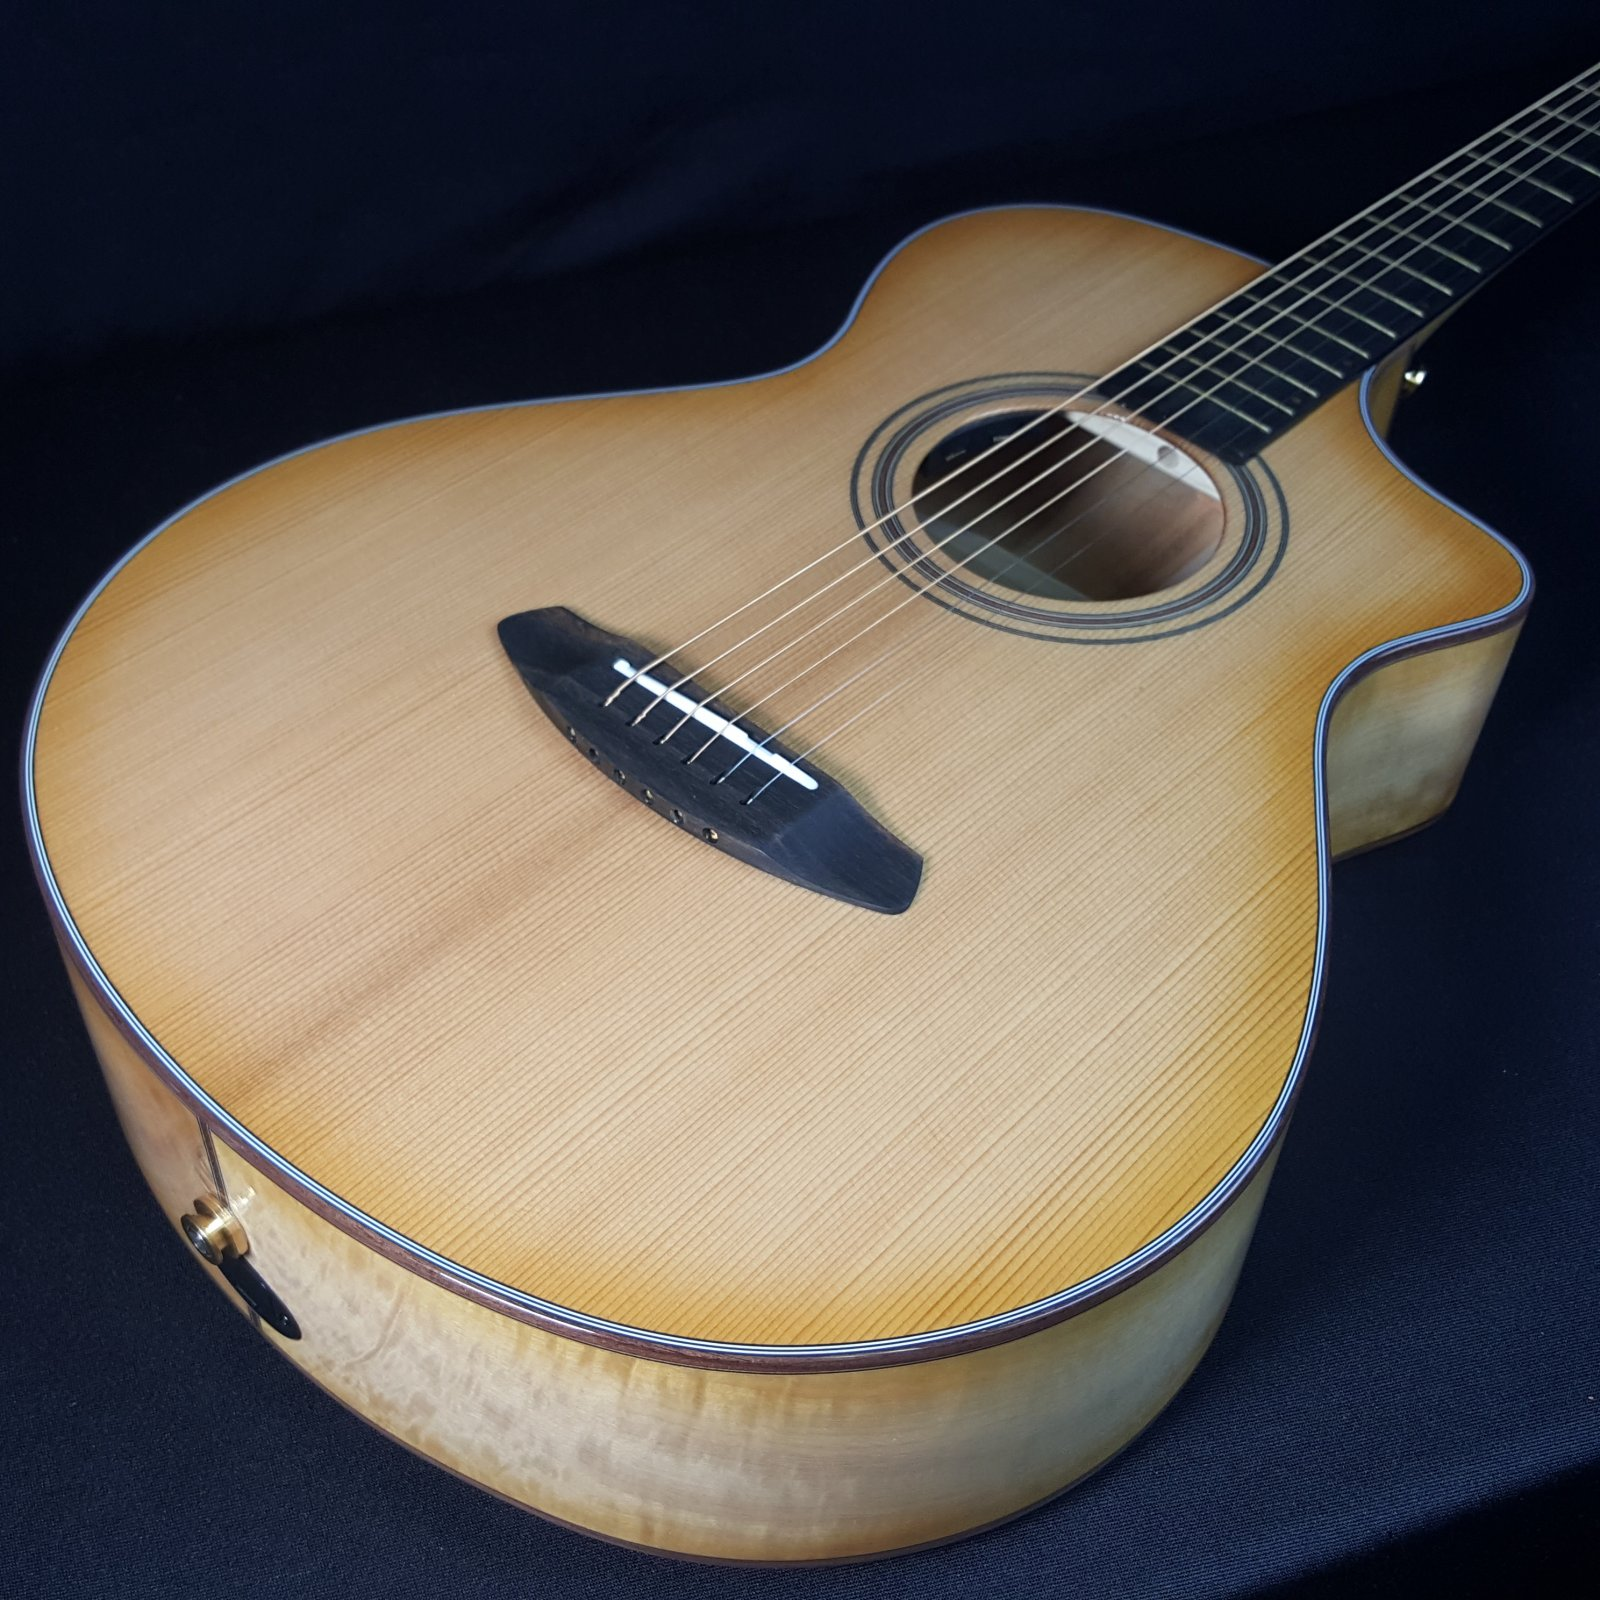 Breedlove Organic Collection Signature Artista Concertina Series Shadow CE All Solid Woods